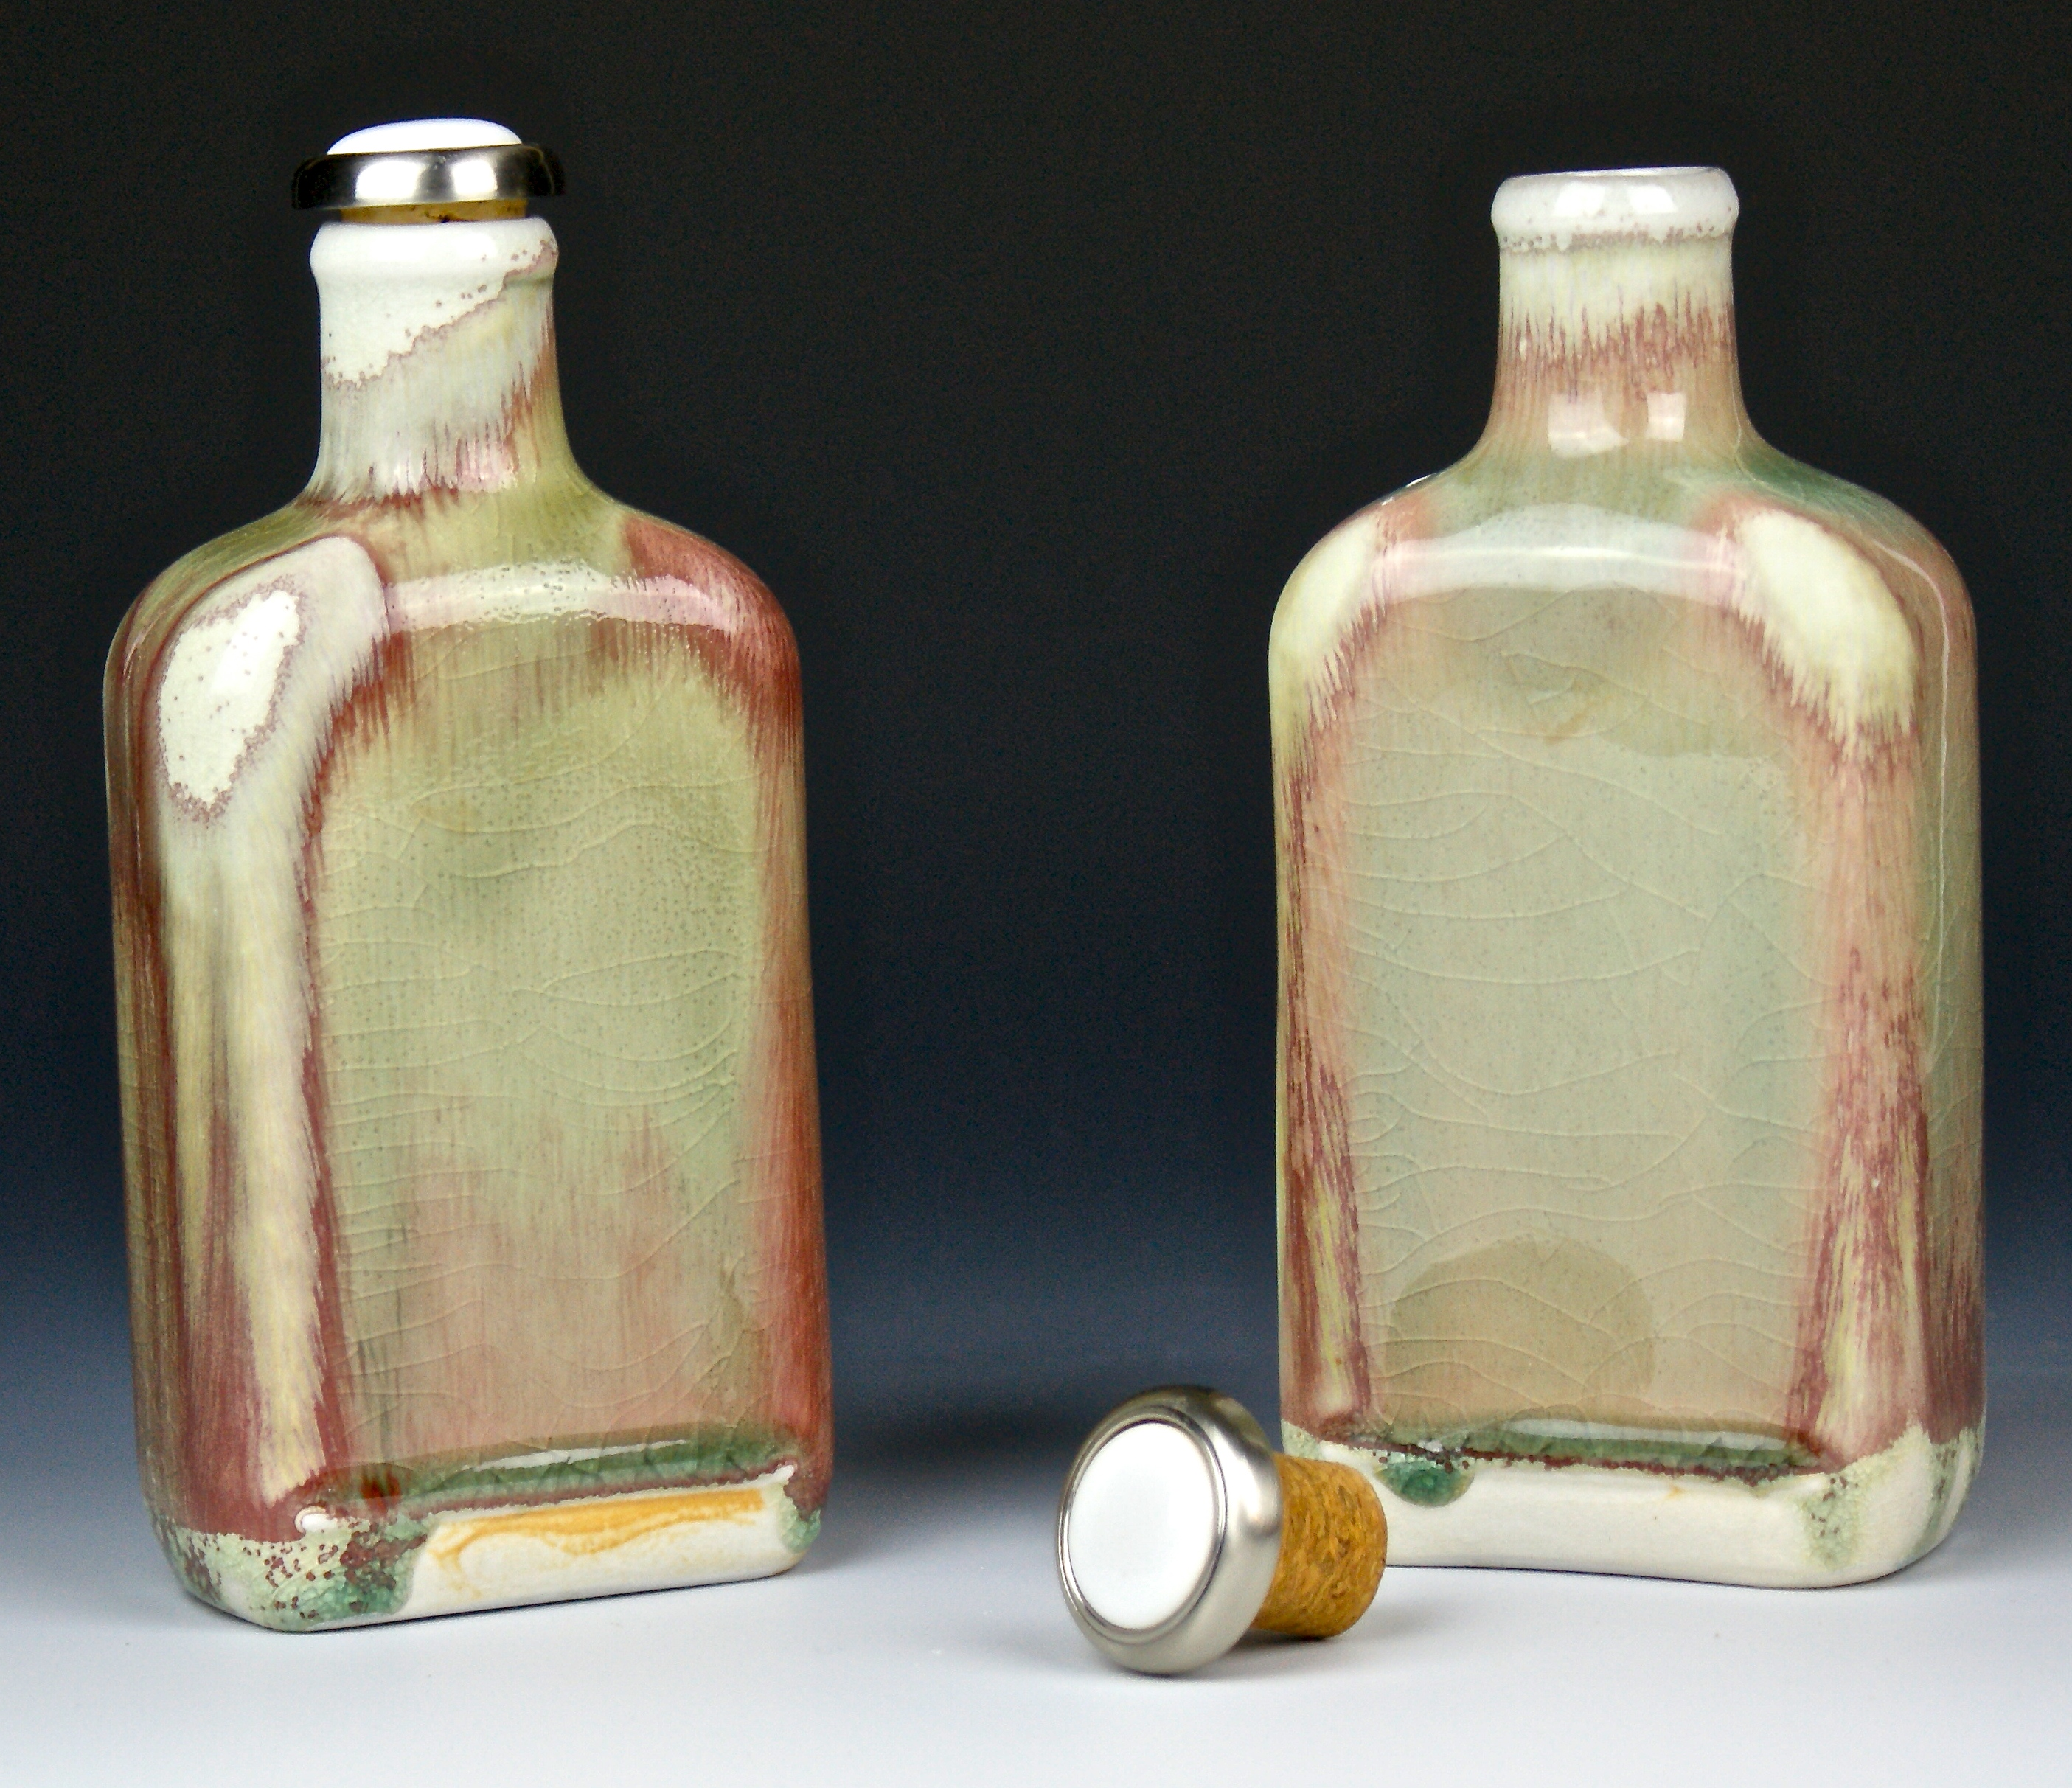 Whiskey-a-go-go Flasks